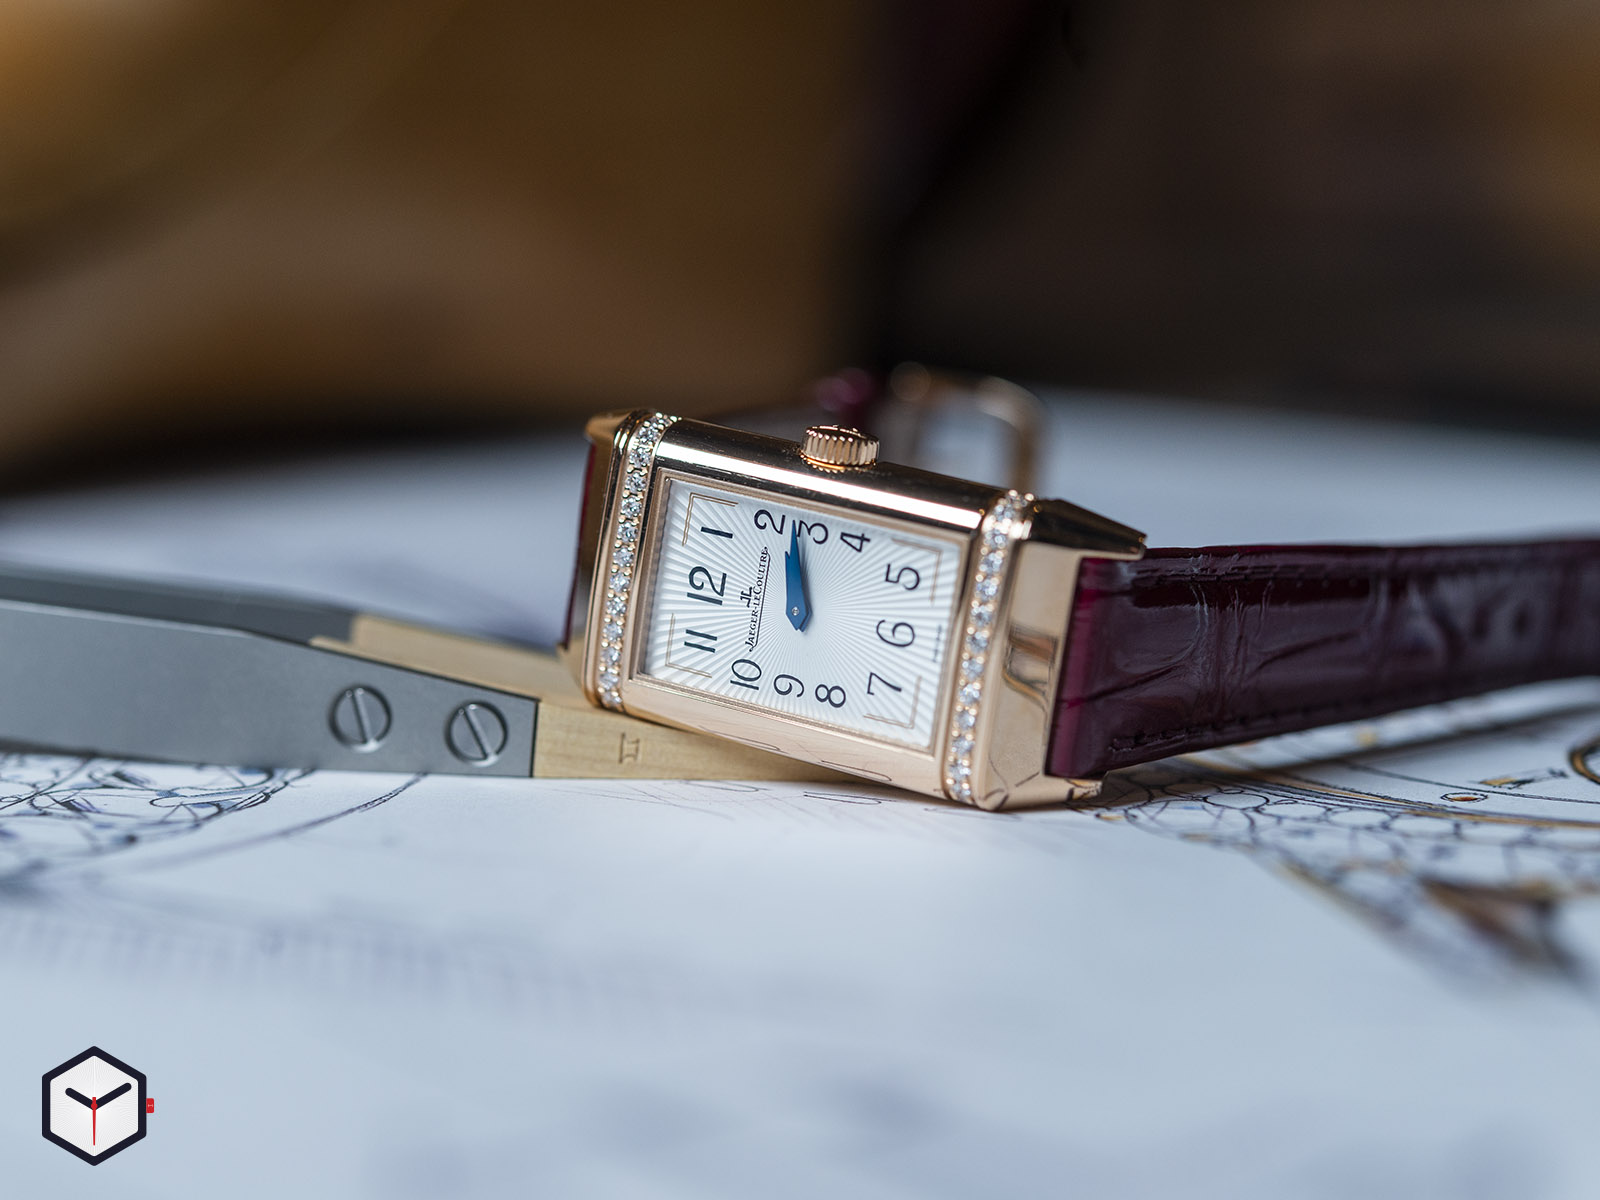 3342520-jaeger-lecoultre-reverso-one-duetto-sihh-2019-1.jpg